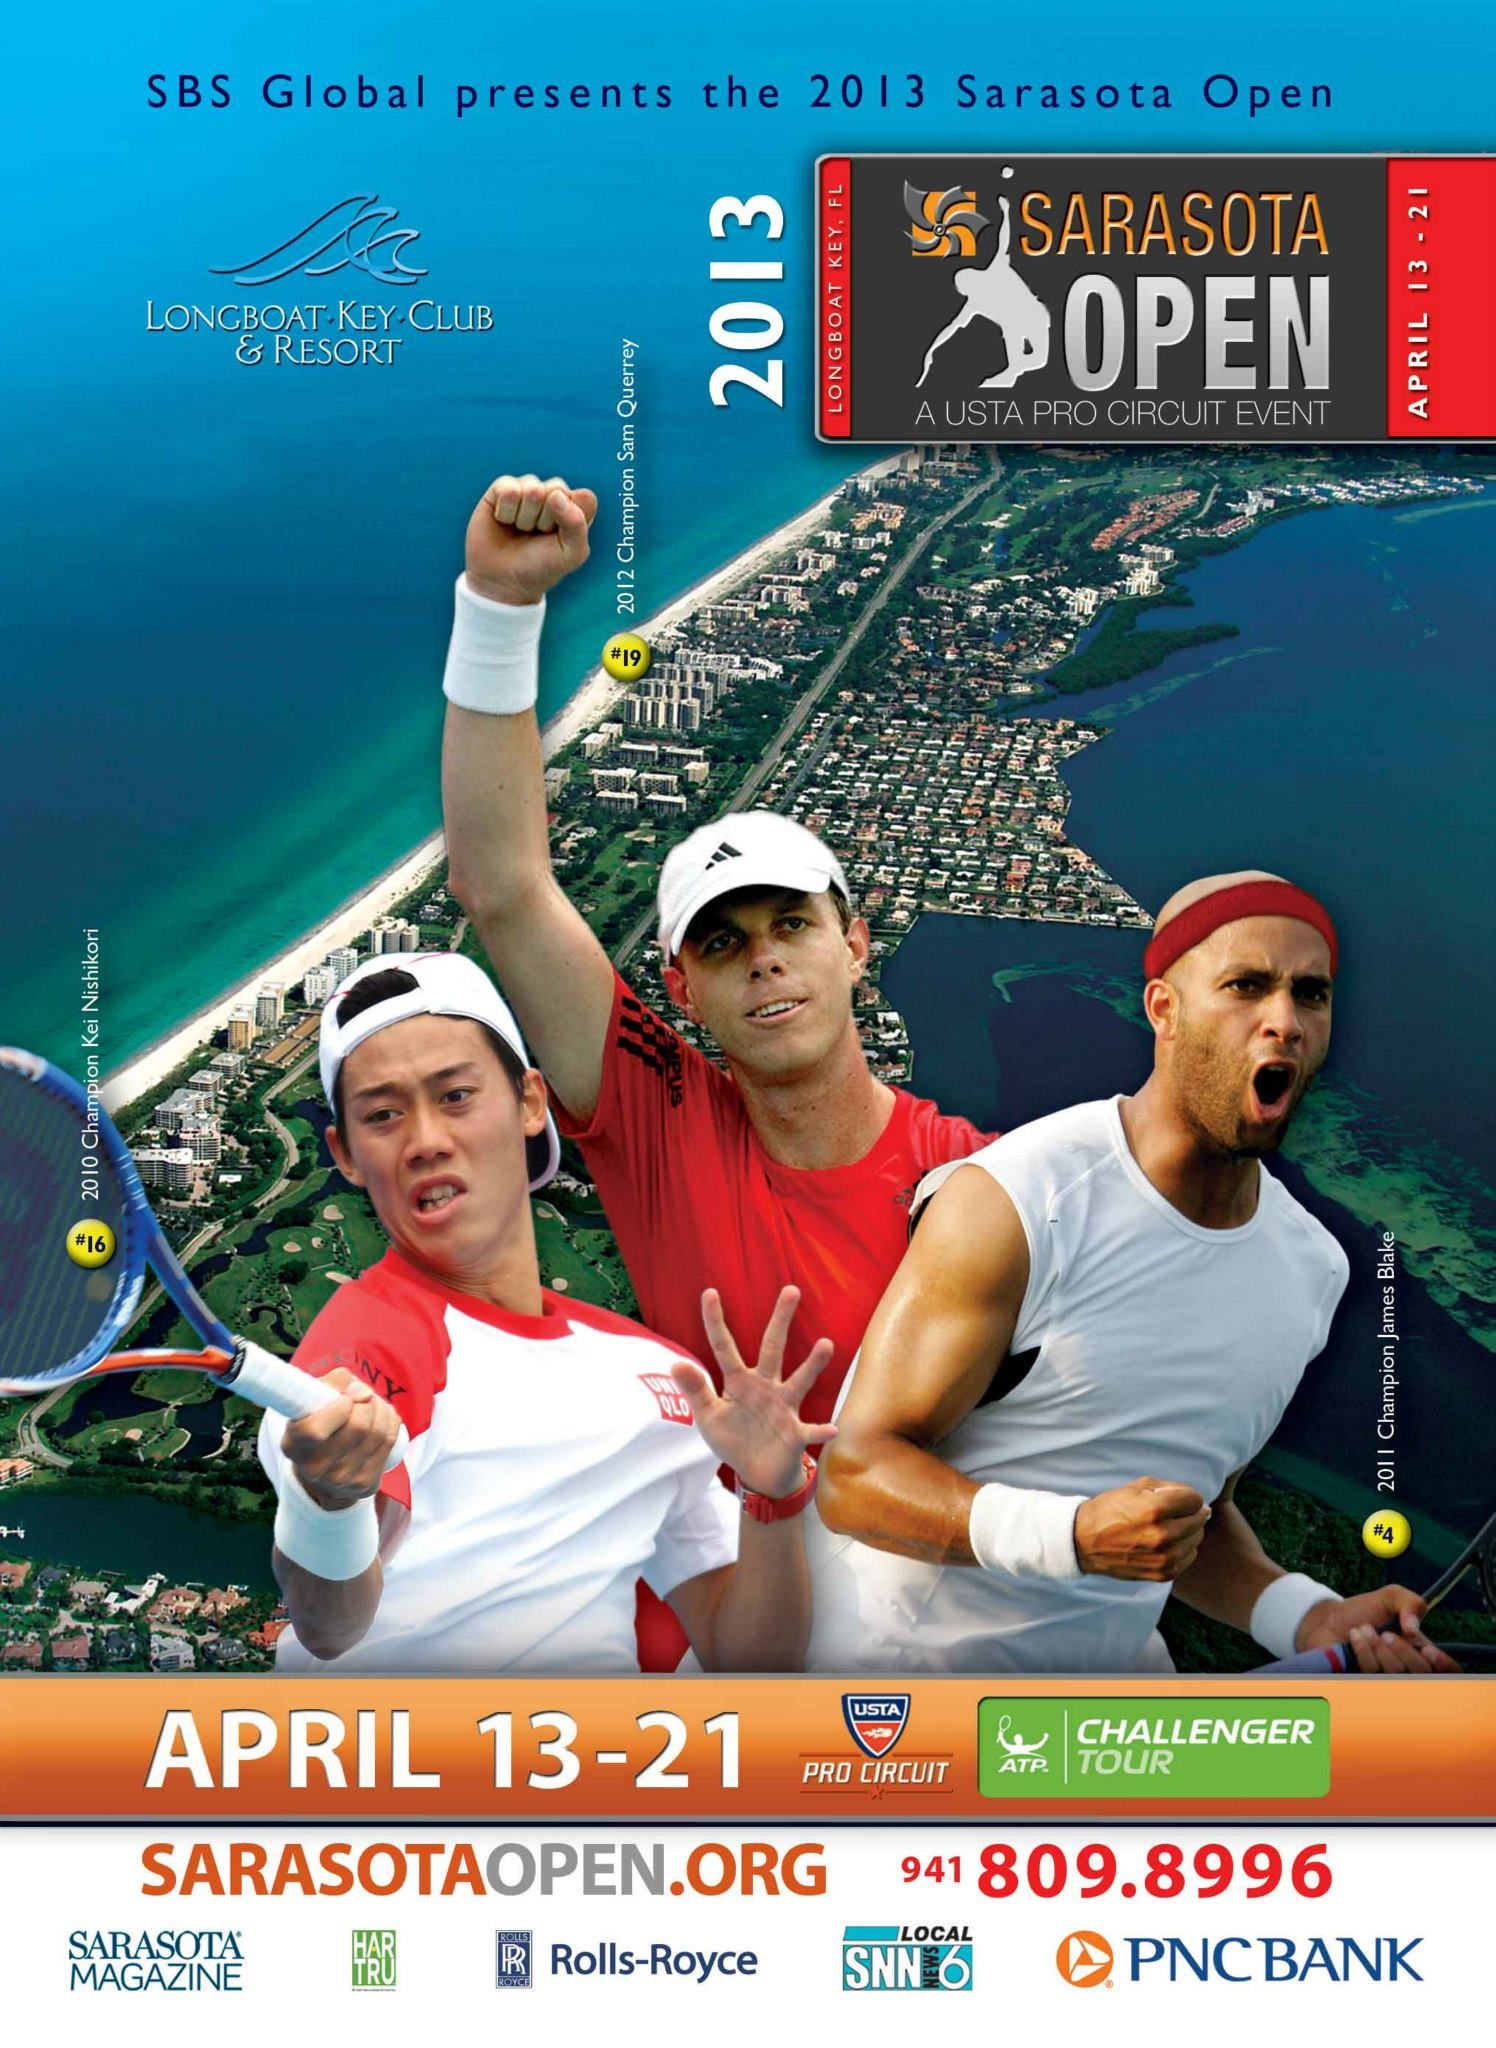 Sarasota Open USTA Pro Circuit Event brochure and flyer designs Instudio E